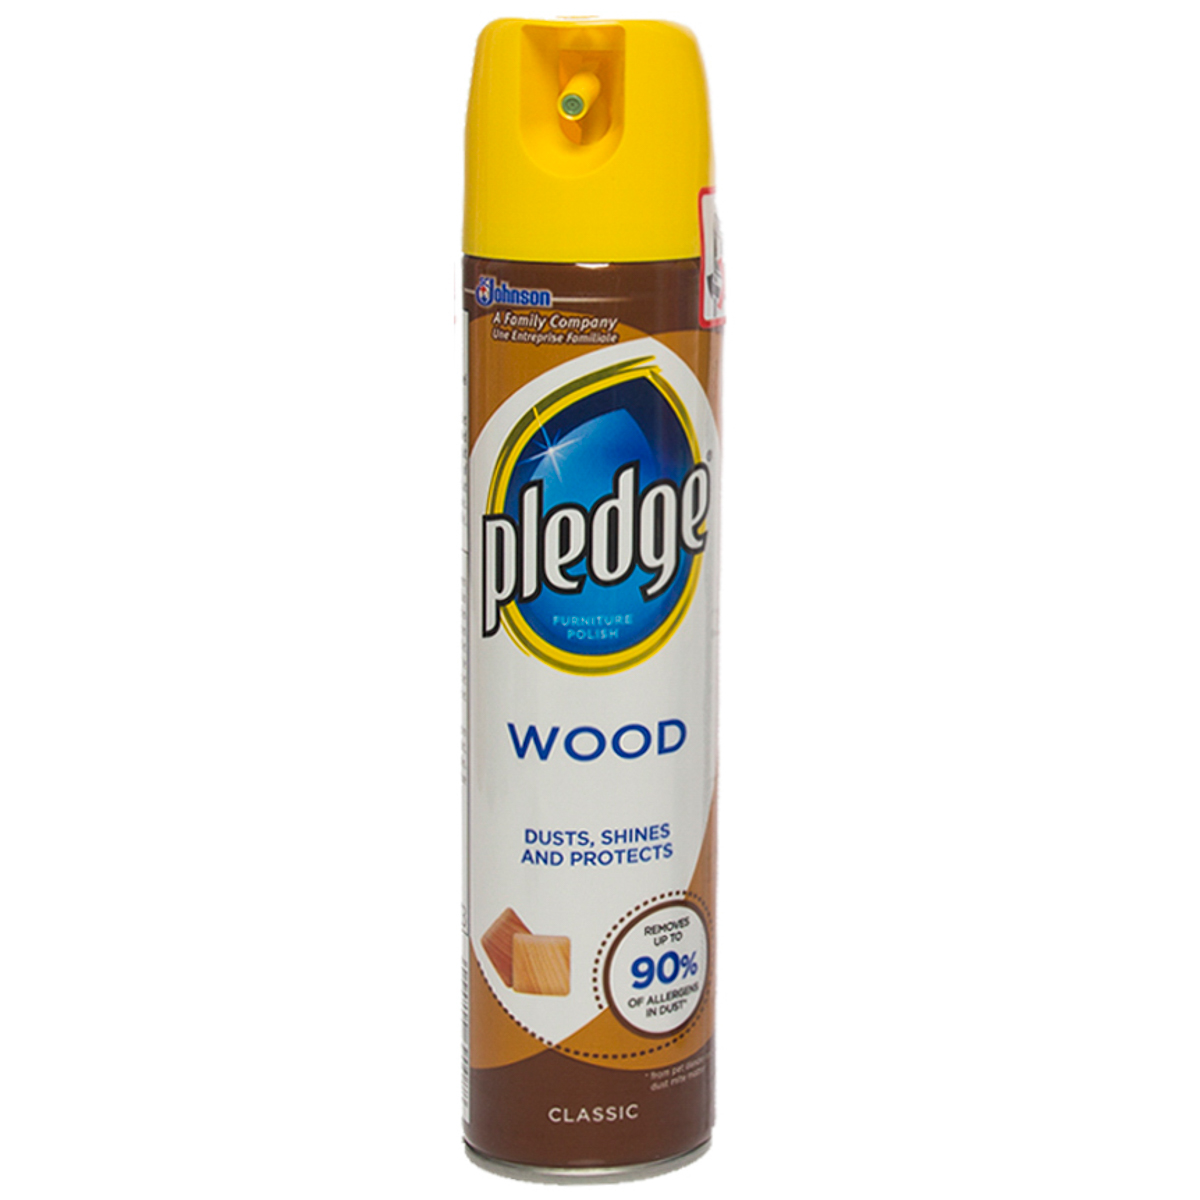 6-Pledge-8-5oz-Furniture-Polish-Dusting-Spray-Can-Household-Cleaner-Dust-Remover thumbnail 7